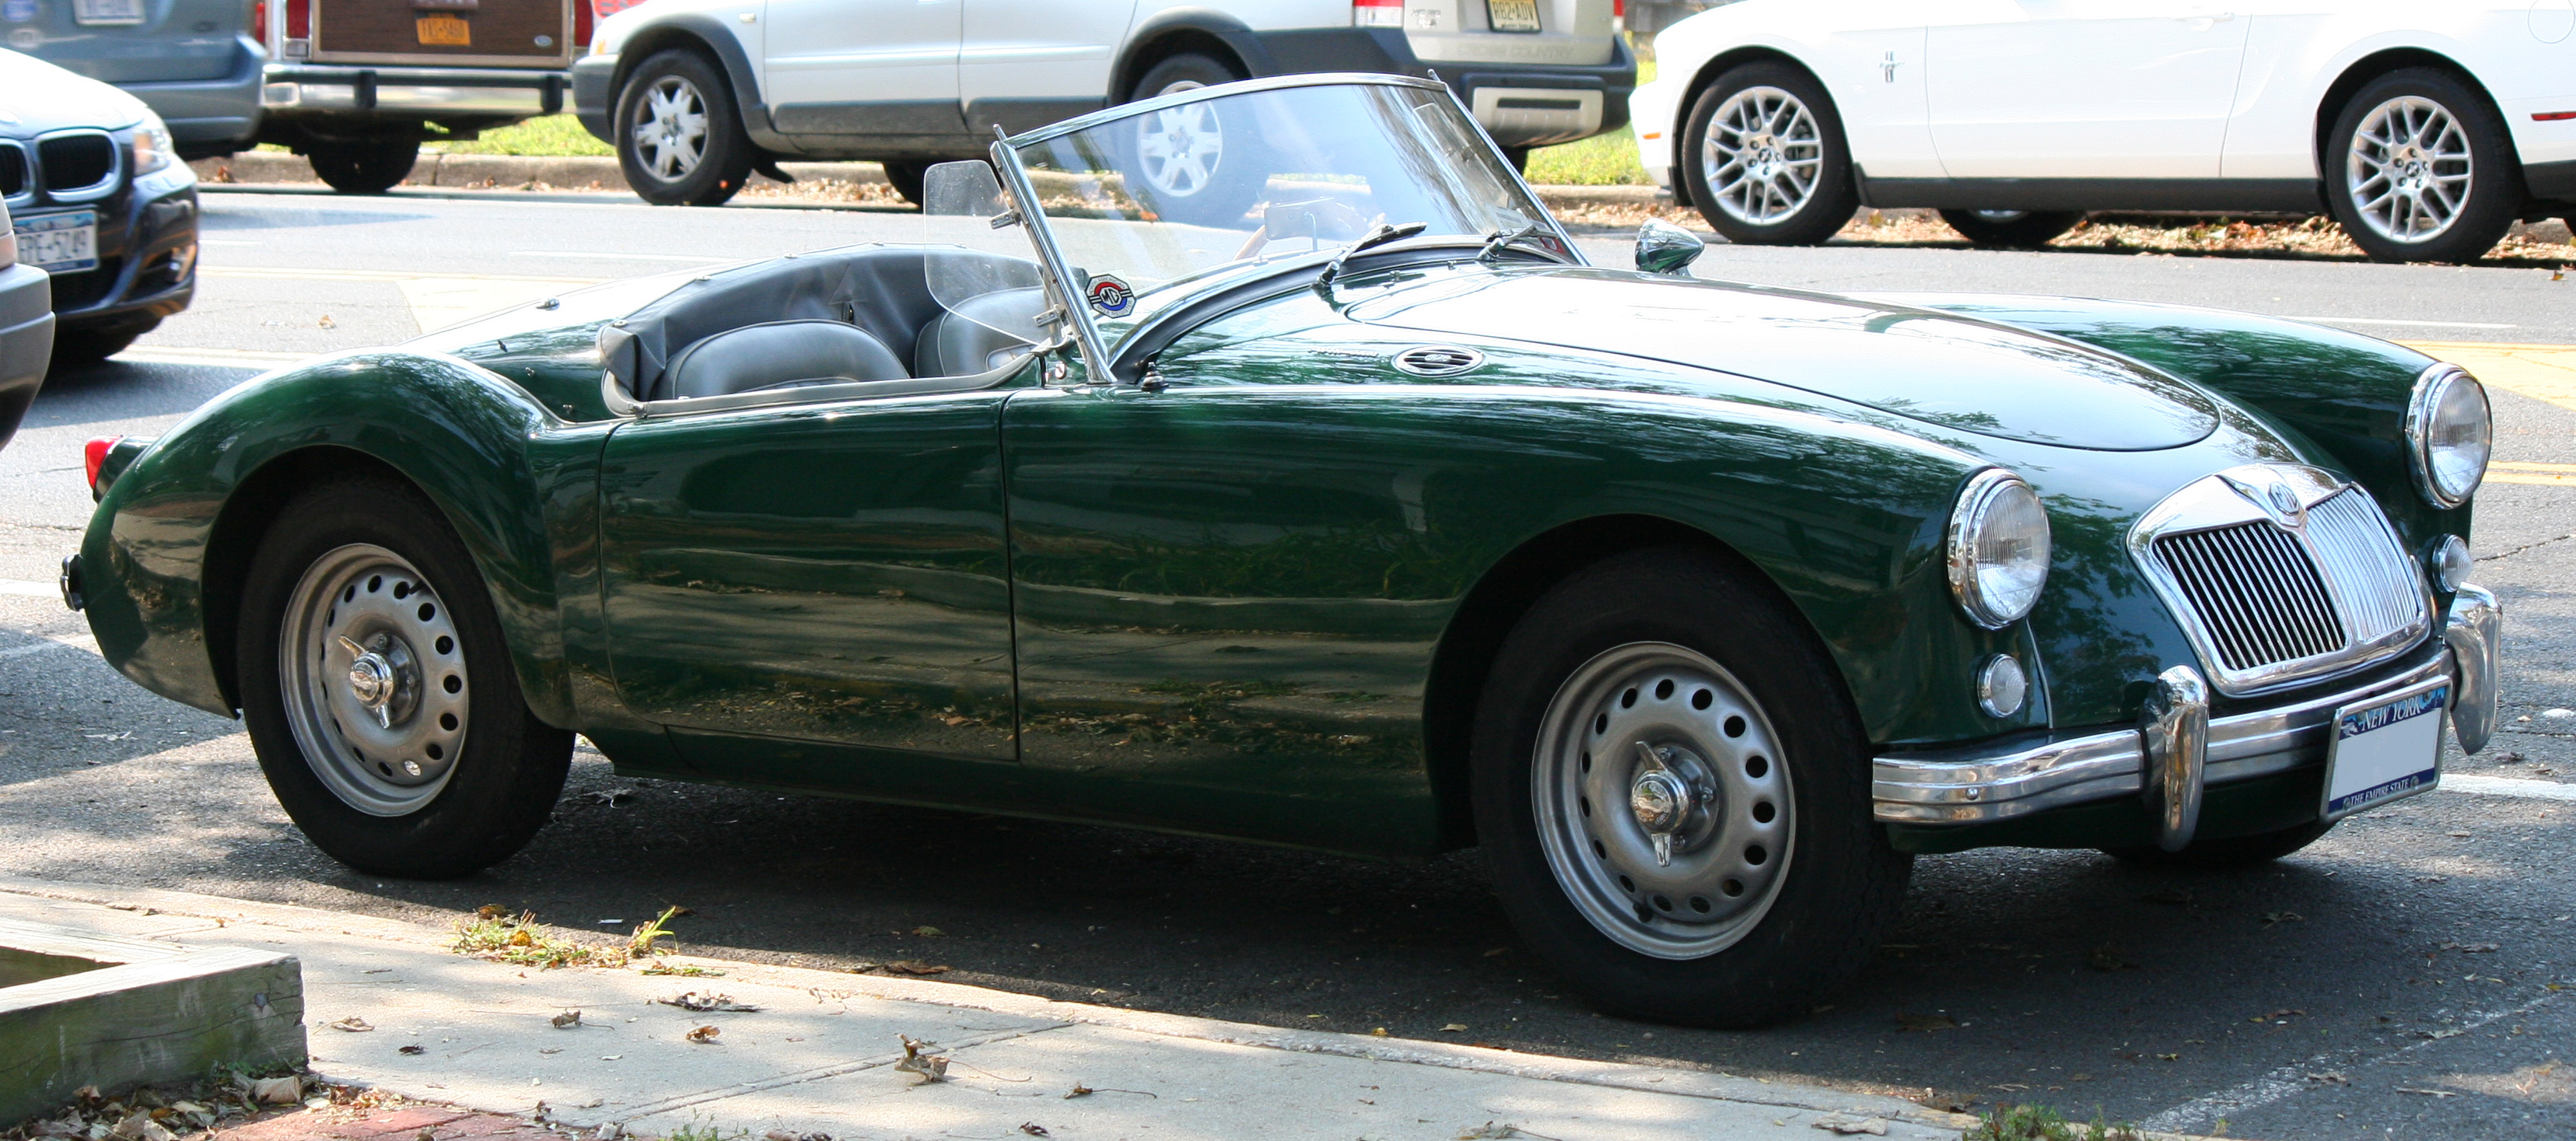 1961 MG MGA 1600 Mk I Values | Hagerty Valuation Tool®